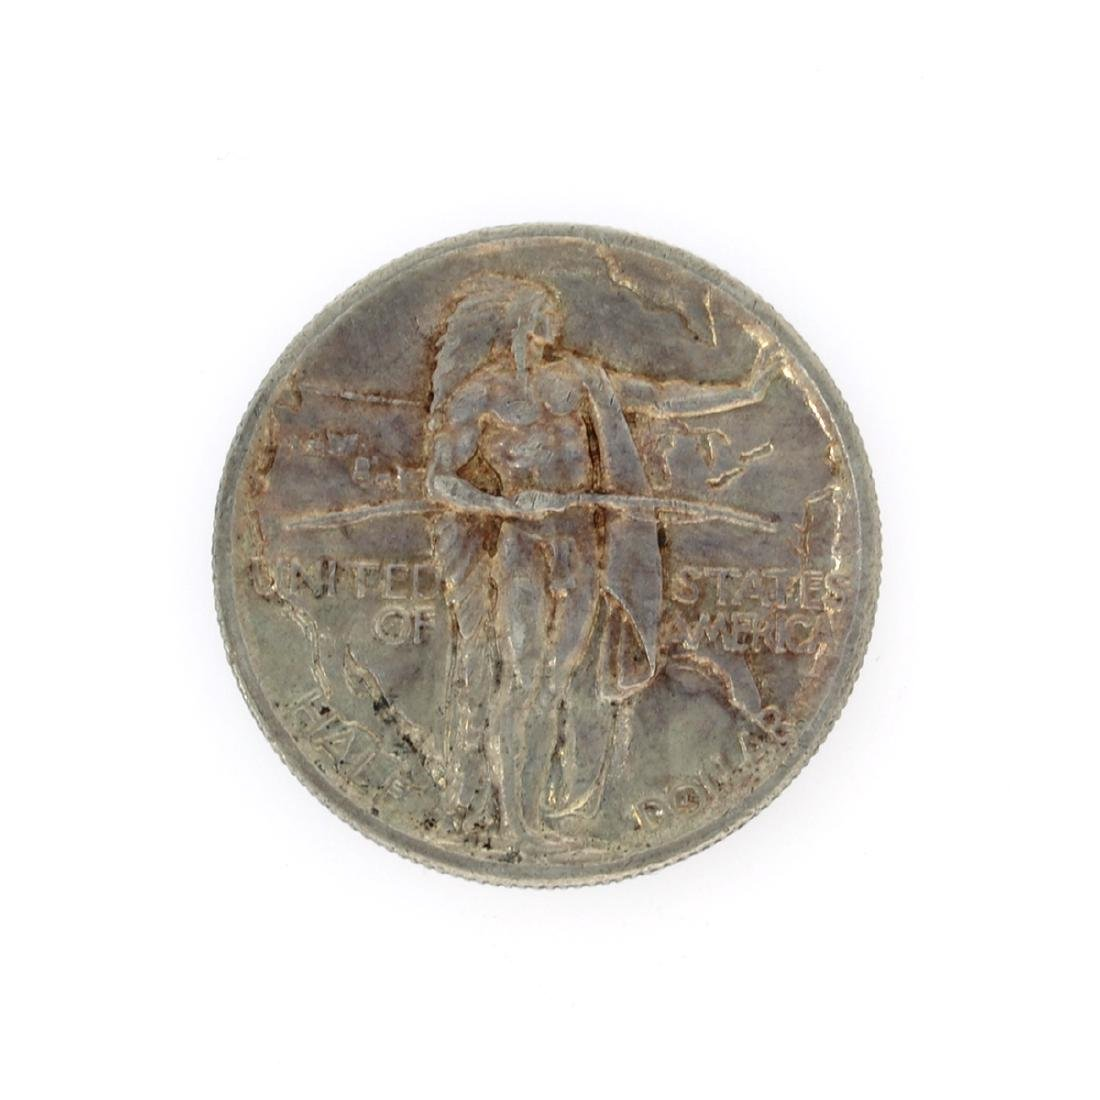 Rare 1926 Oregon Trail Memorial Half Dollar Coin - 2